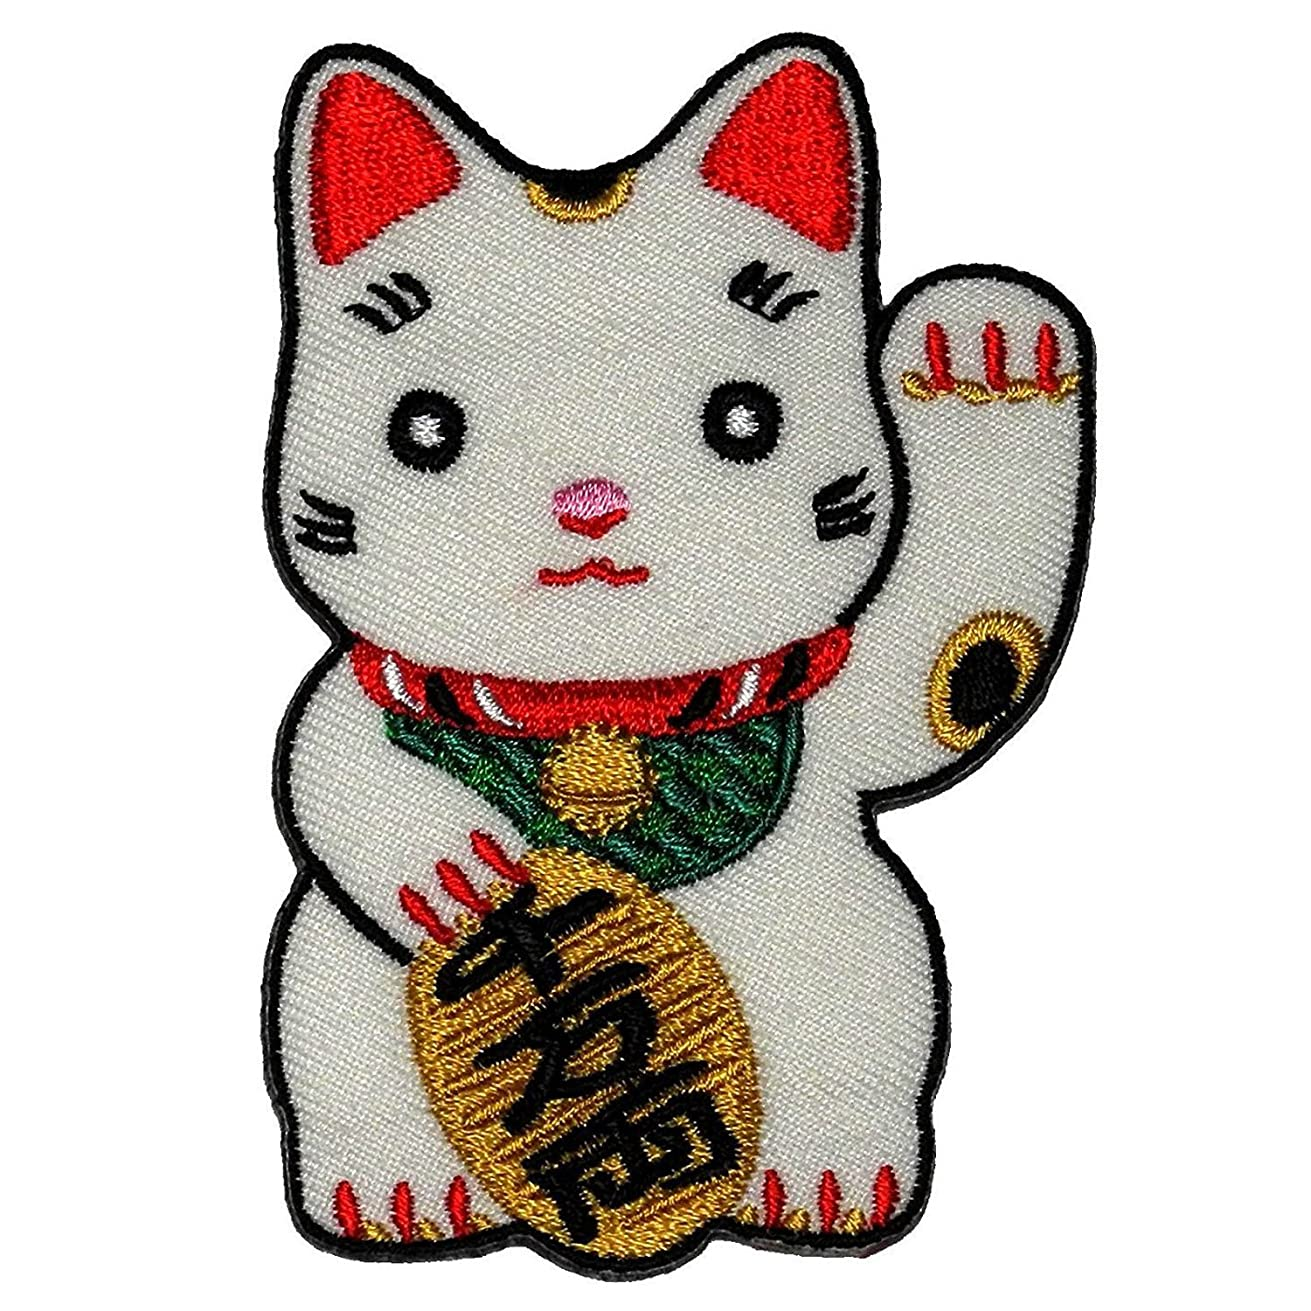 Cute Maneki-neko Japan Japanese Lucky Cat DIY Embroidered Sew Iron on Patch By Art vs Racing